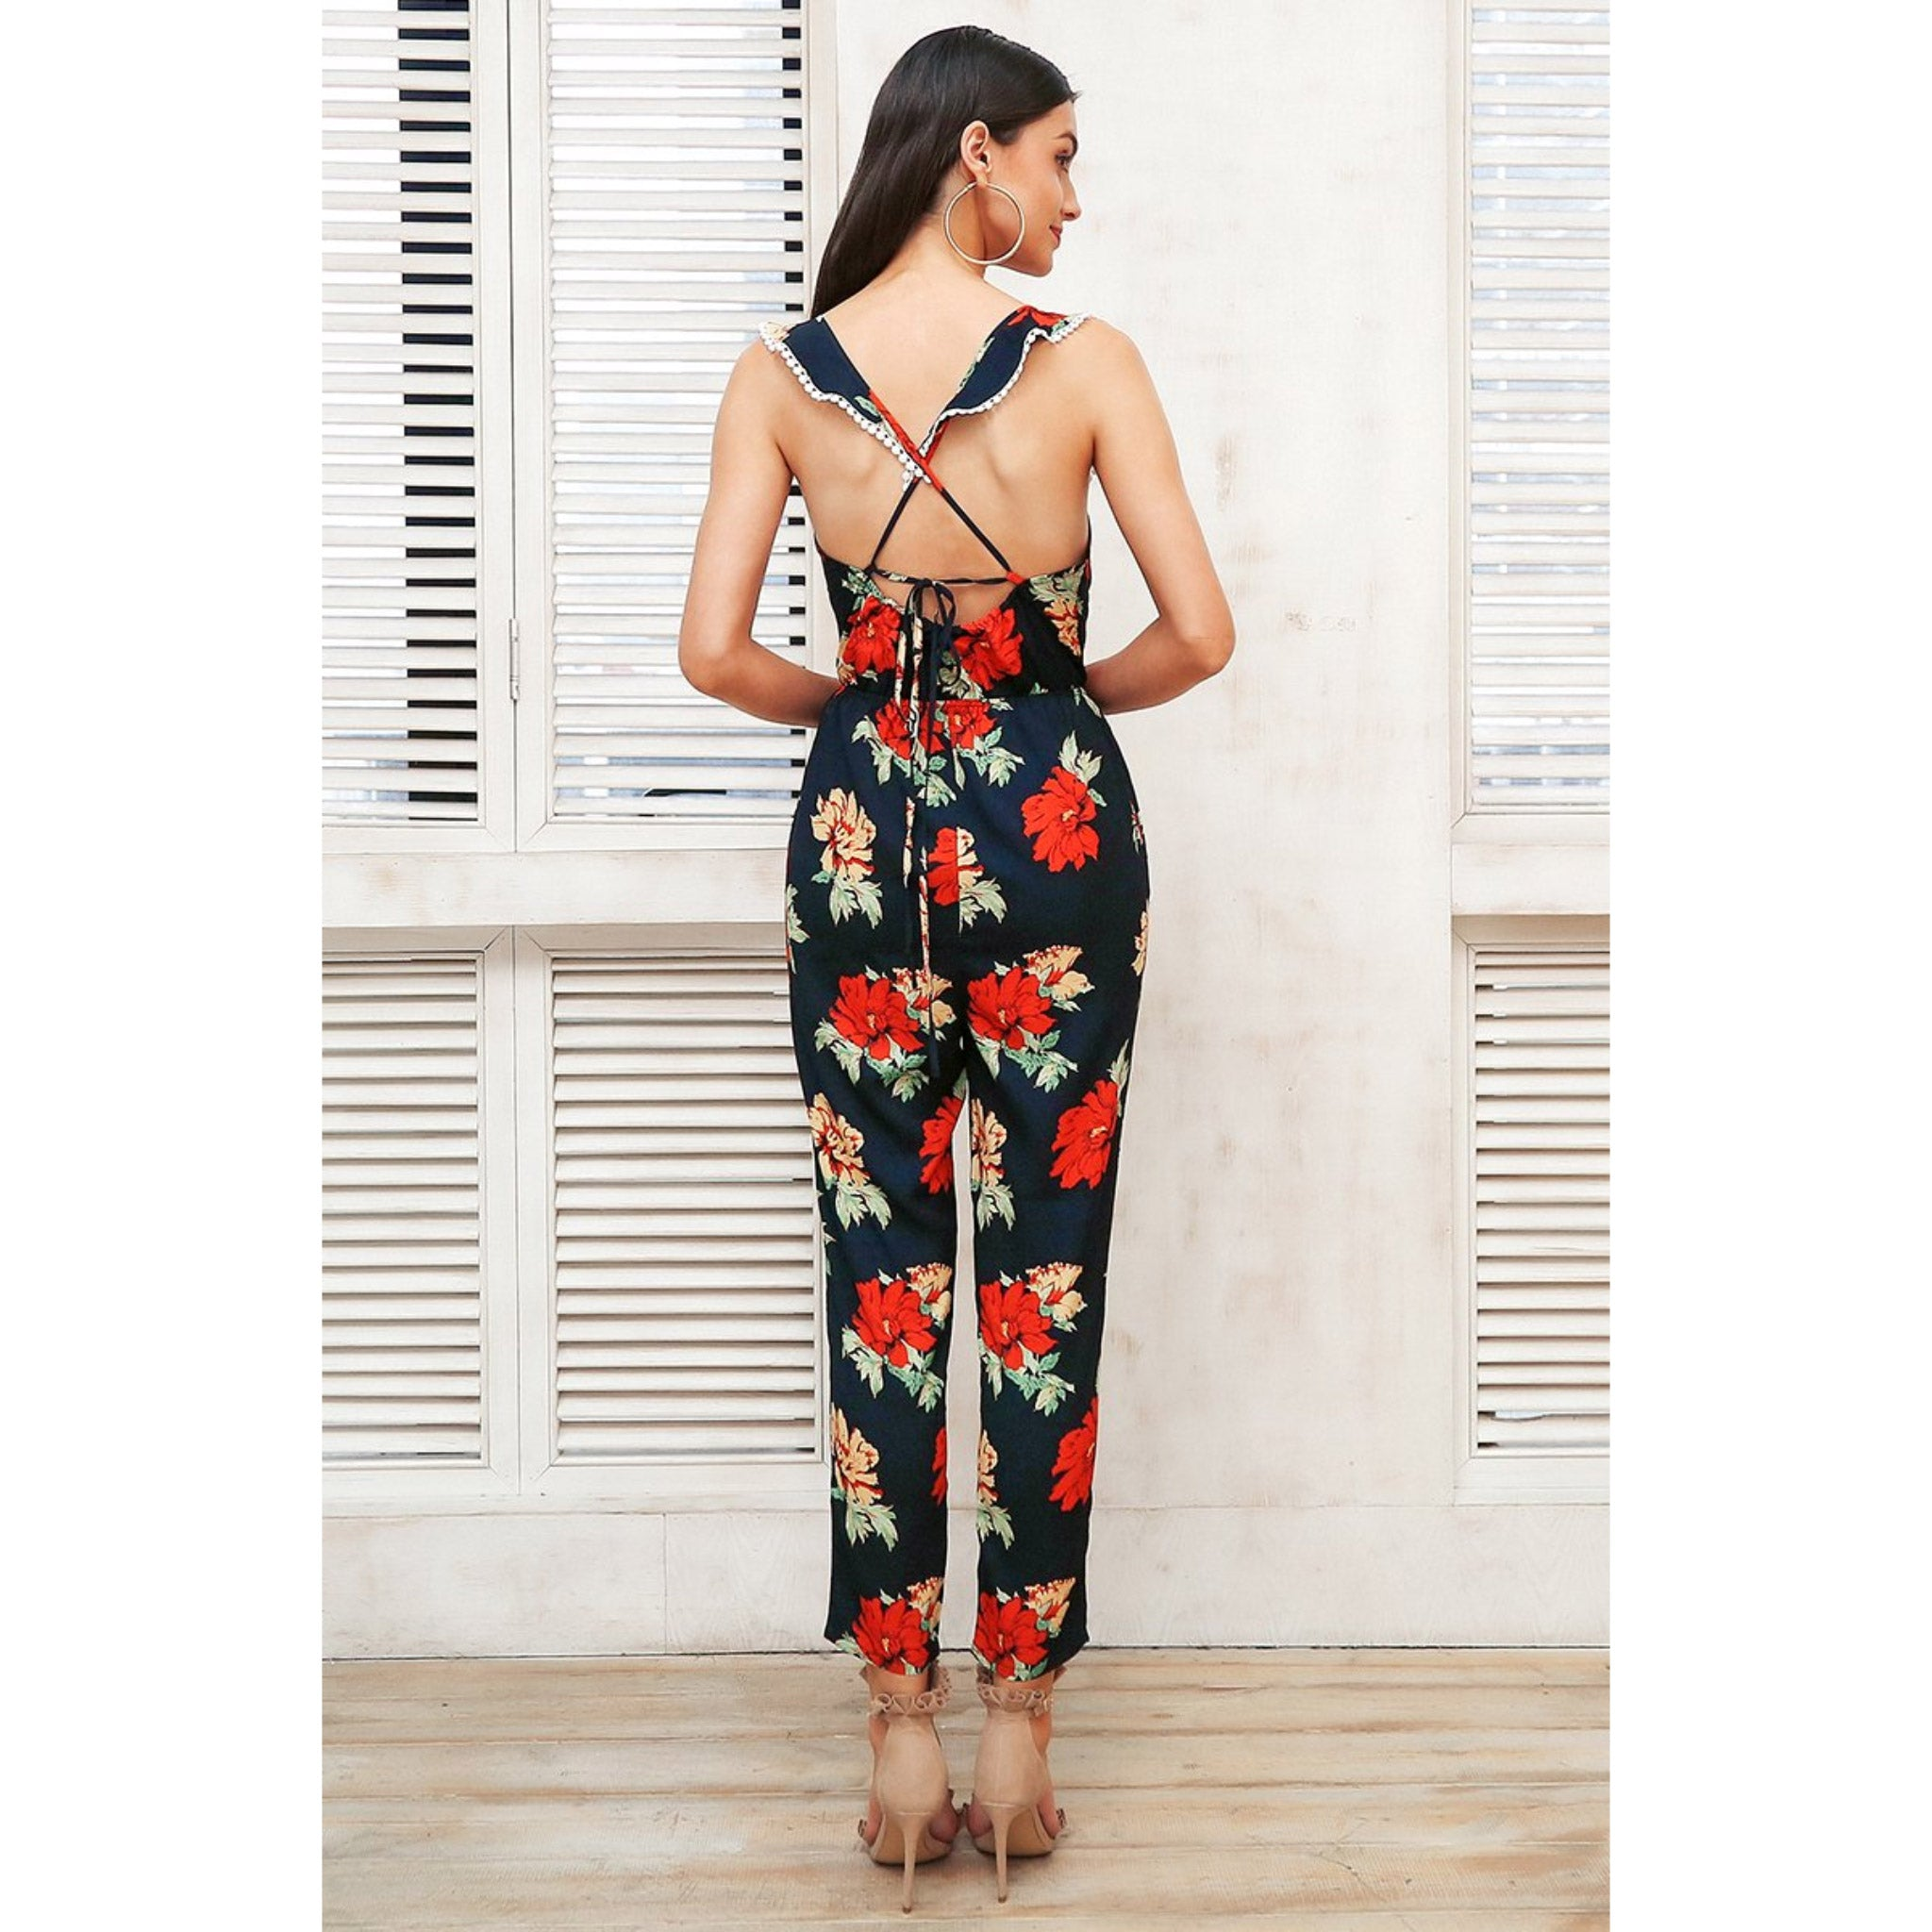 Jumpsuit with Open Back Floral Pattern and Sleeveless